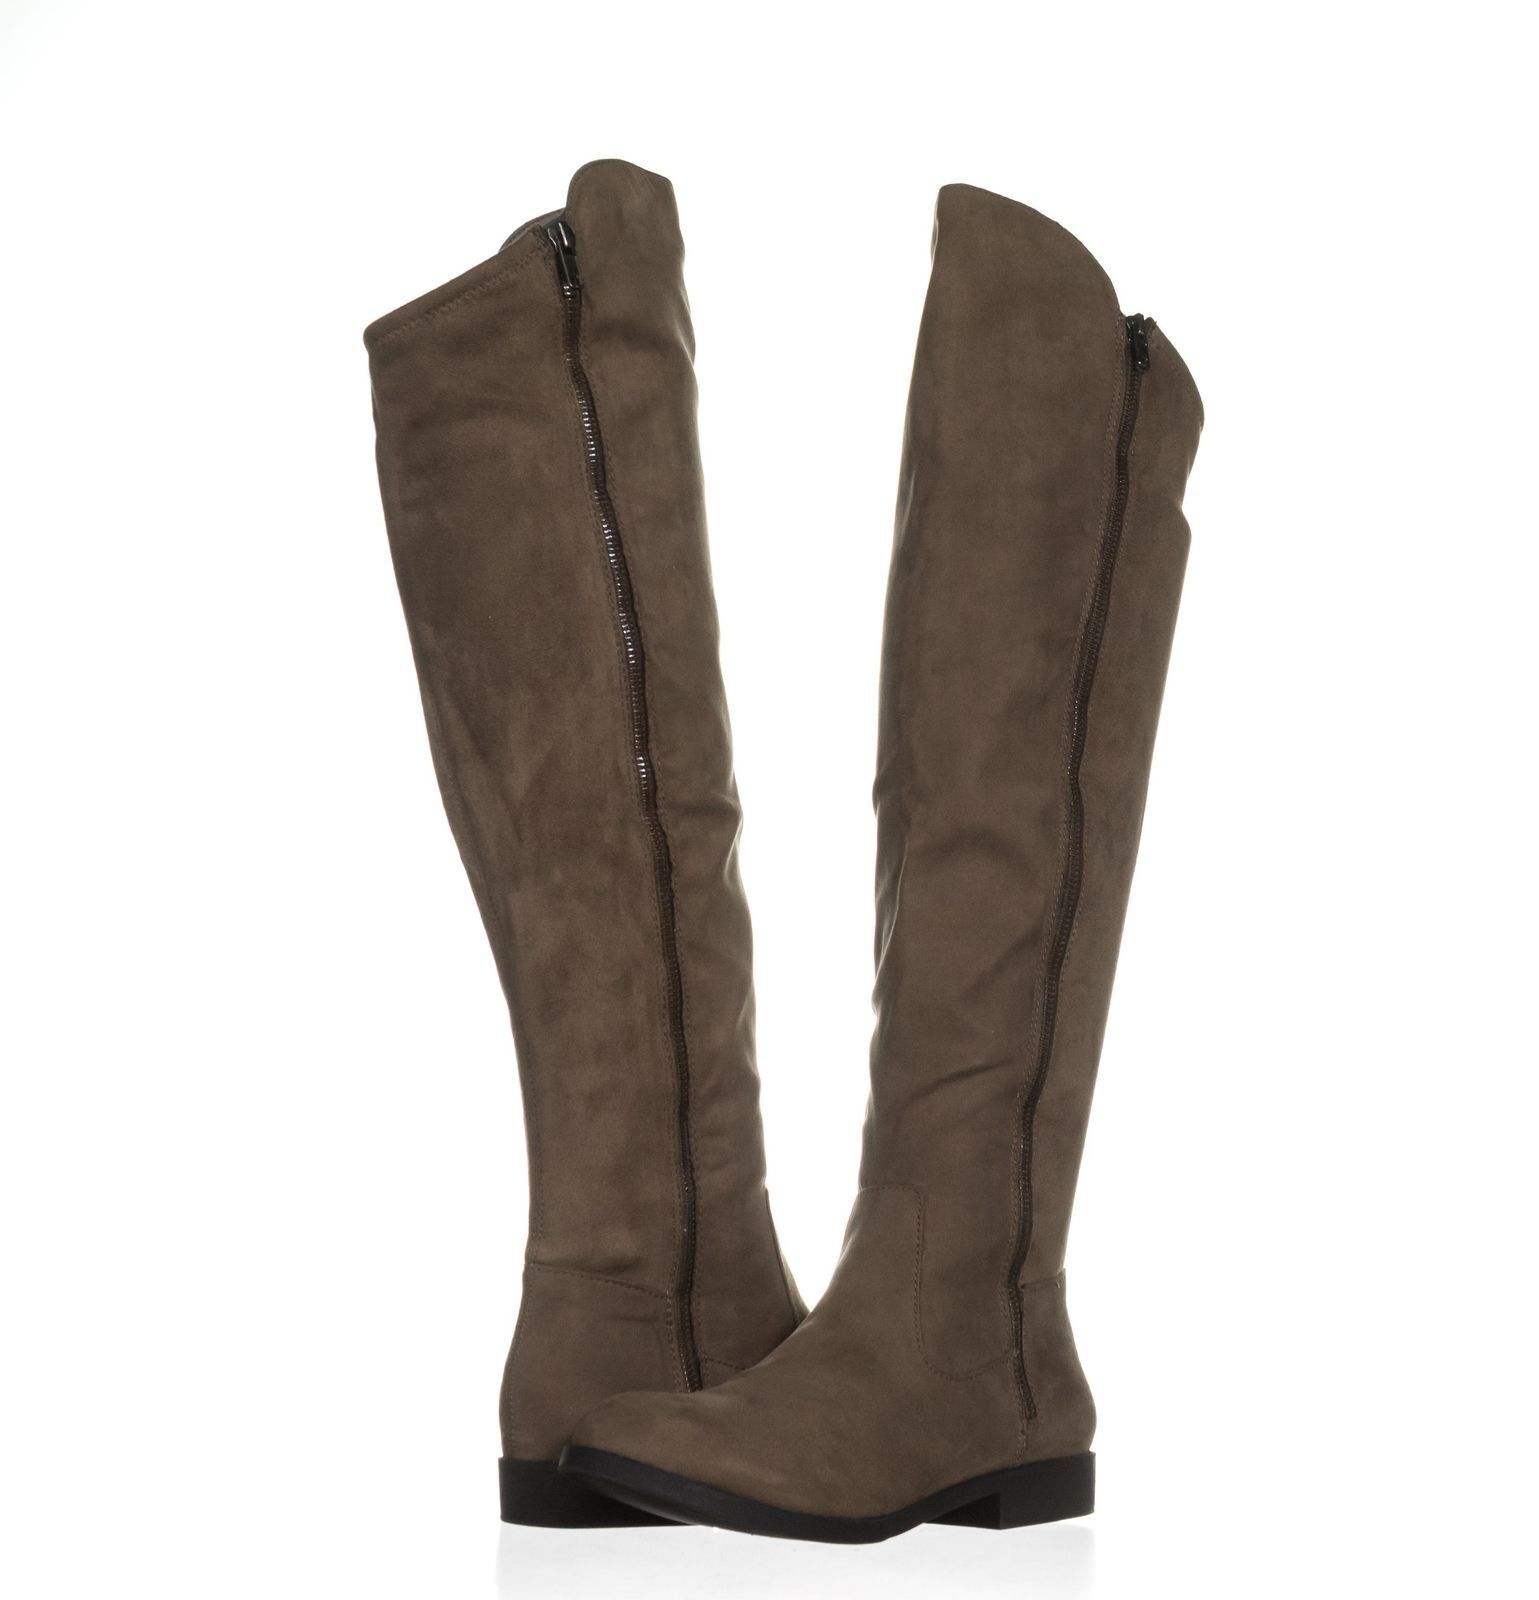 Style & Co Women's Hadleyy Over-the-Knee Boots Truffle